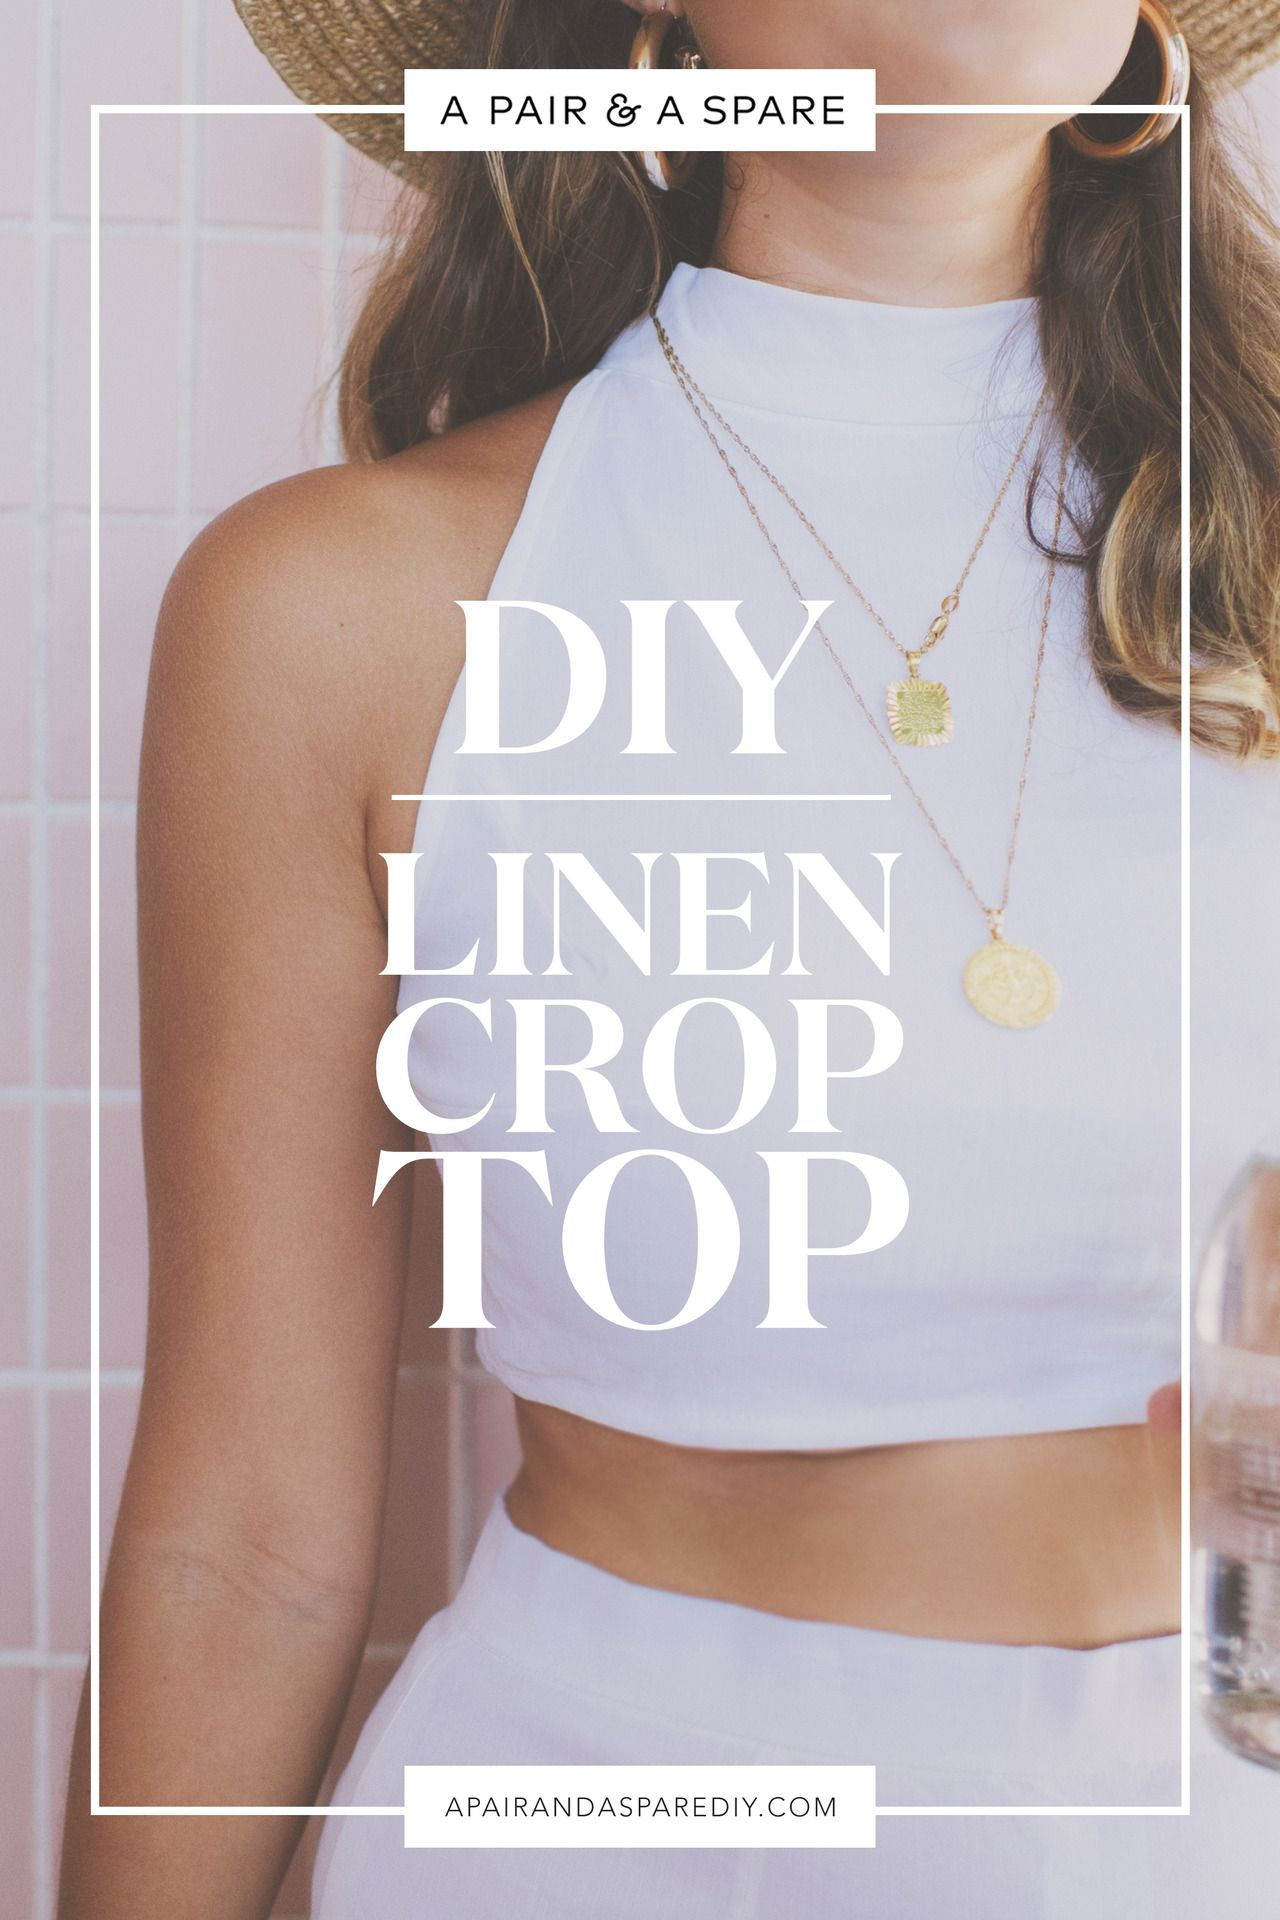 DIY Linen Crop Top | Collective Gen